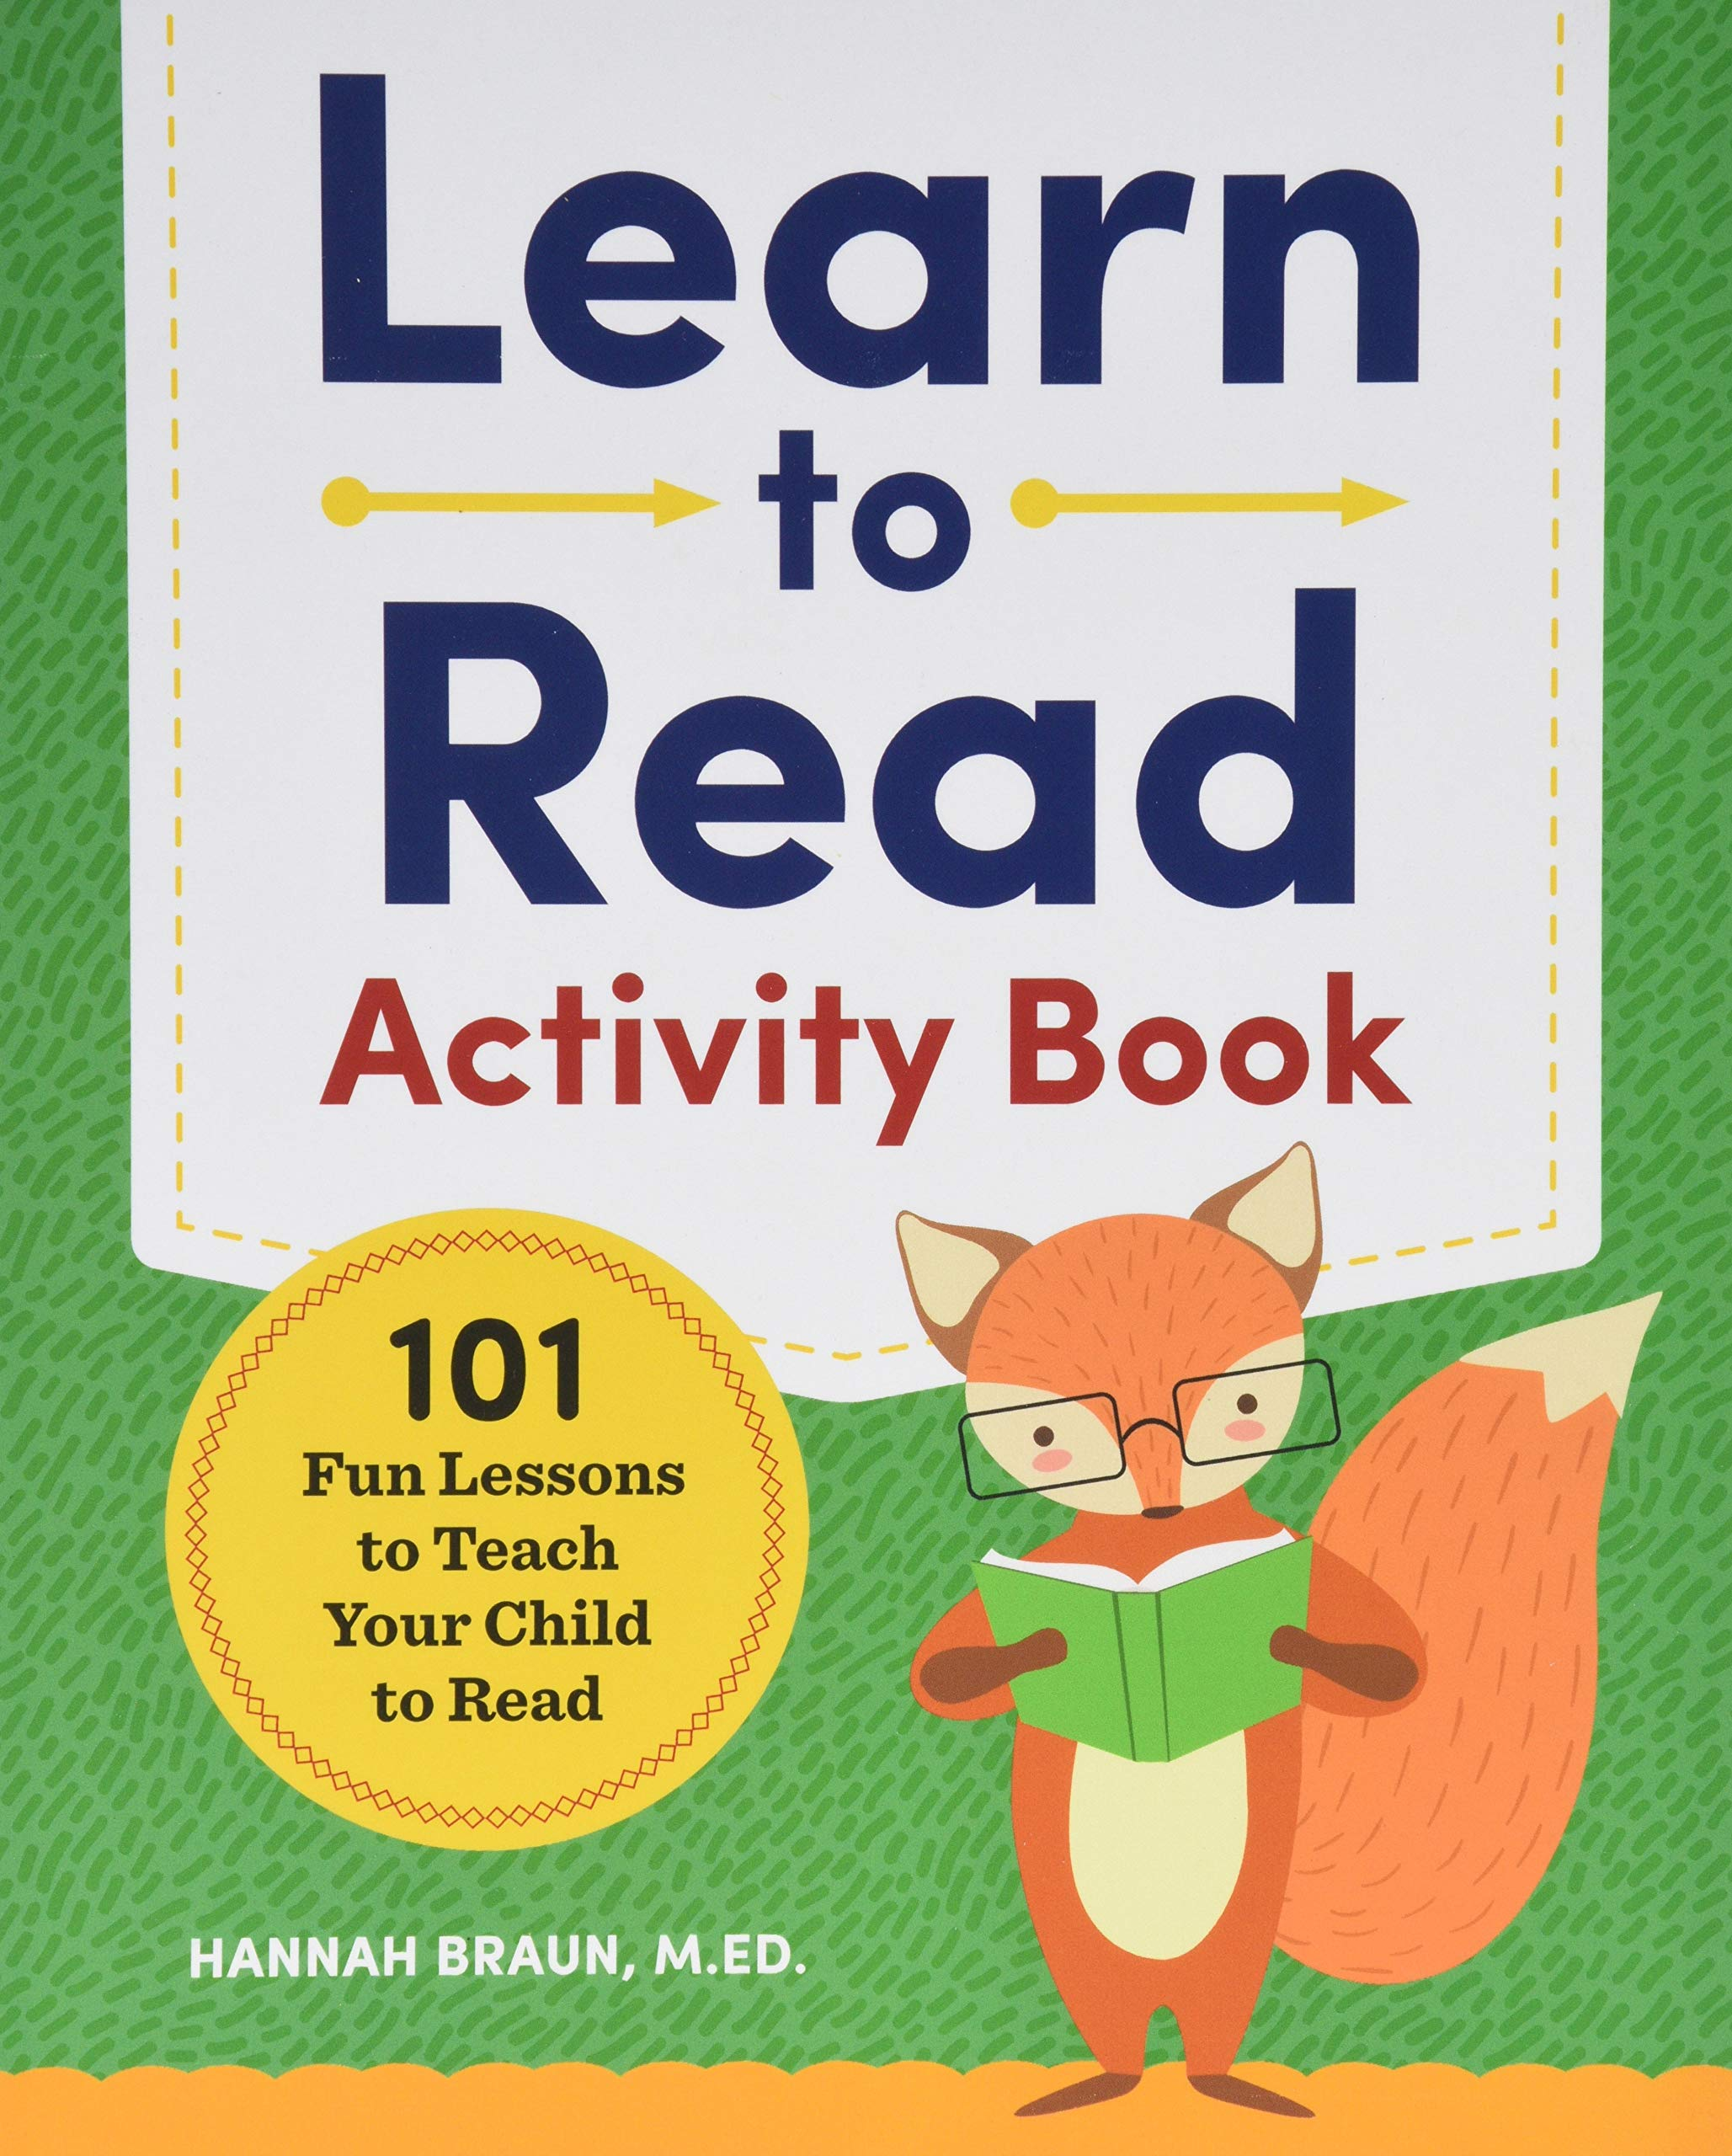 Learn To Read Activity Book  101 Fun Lessons To Teach Your Child To Read